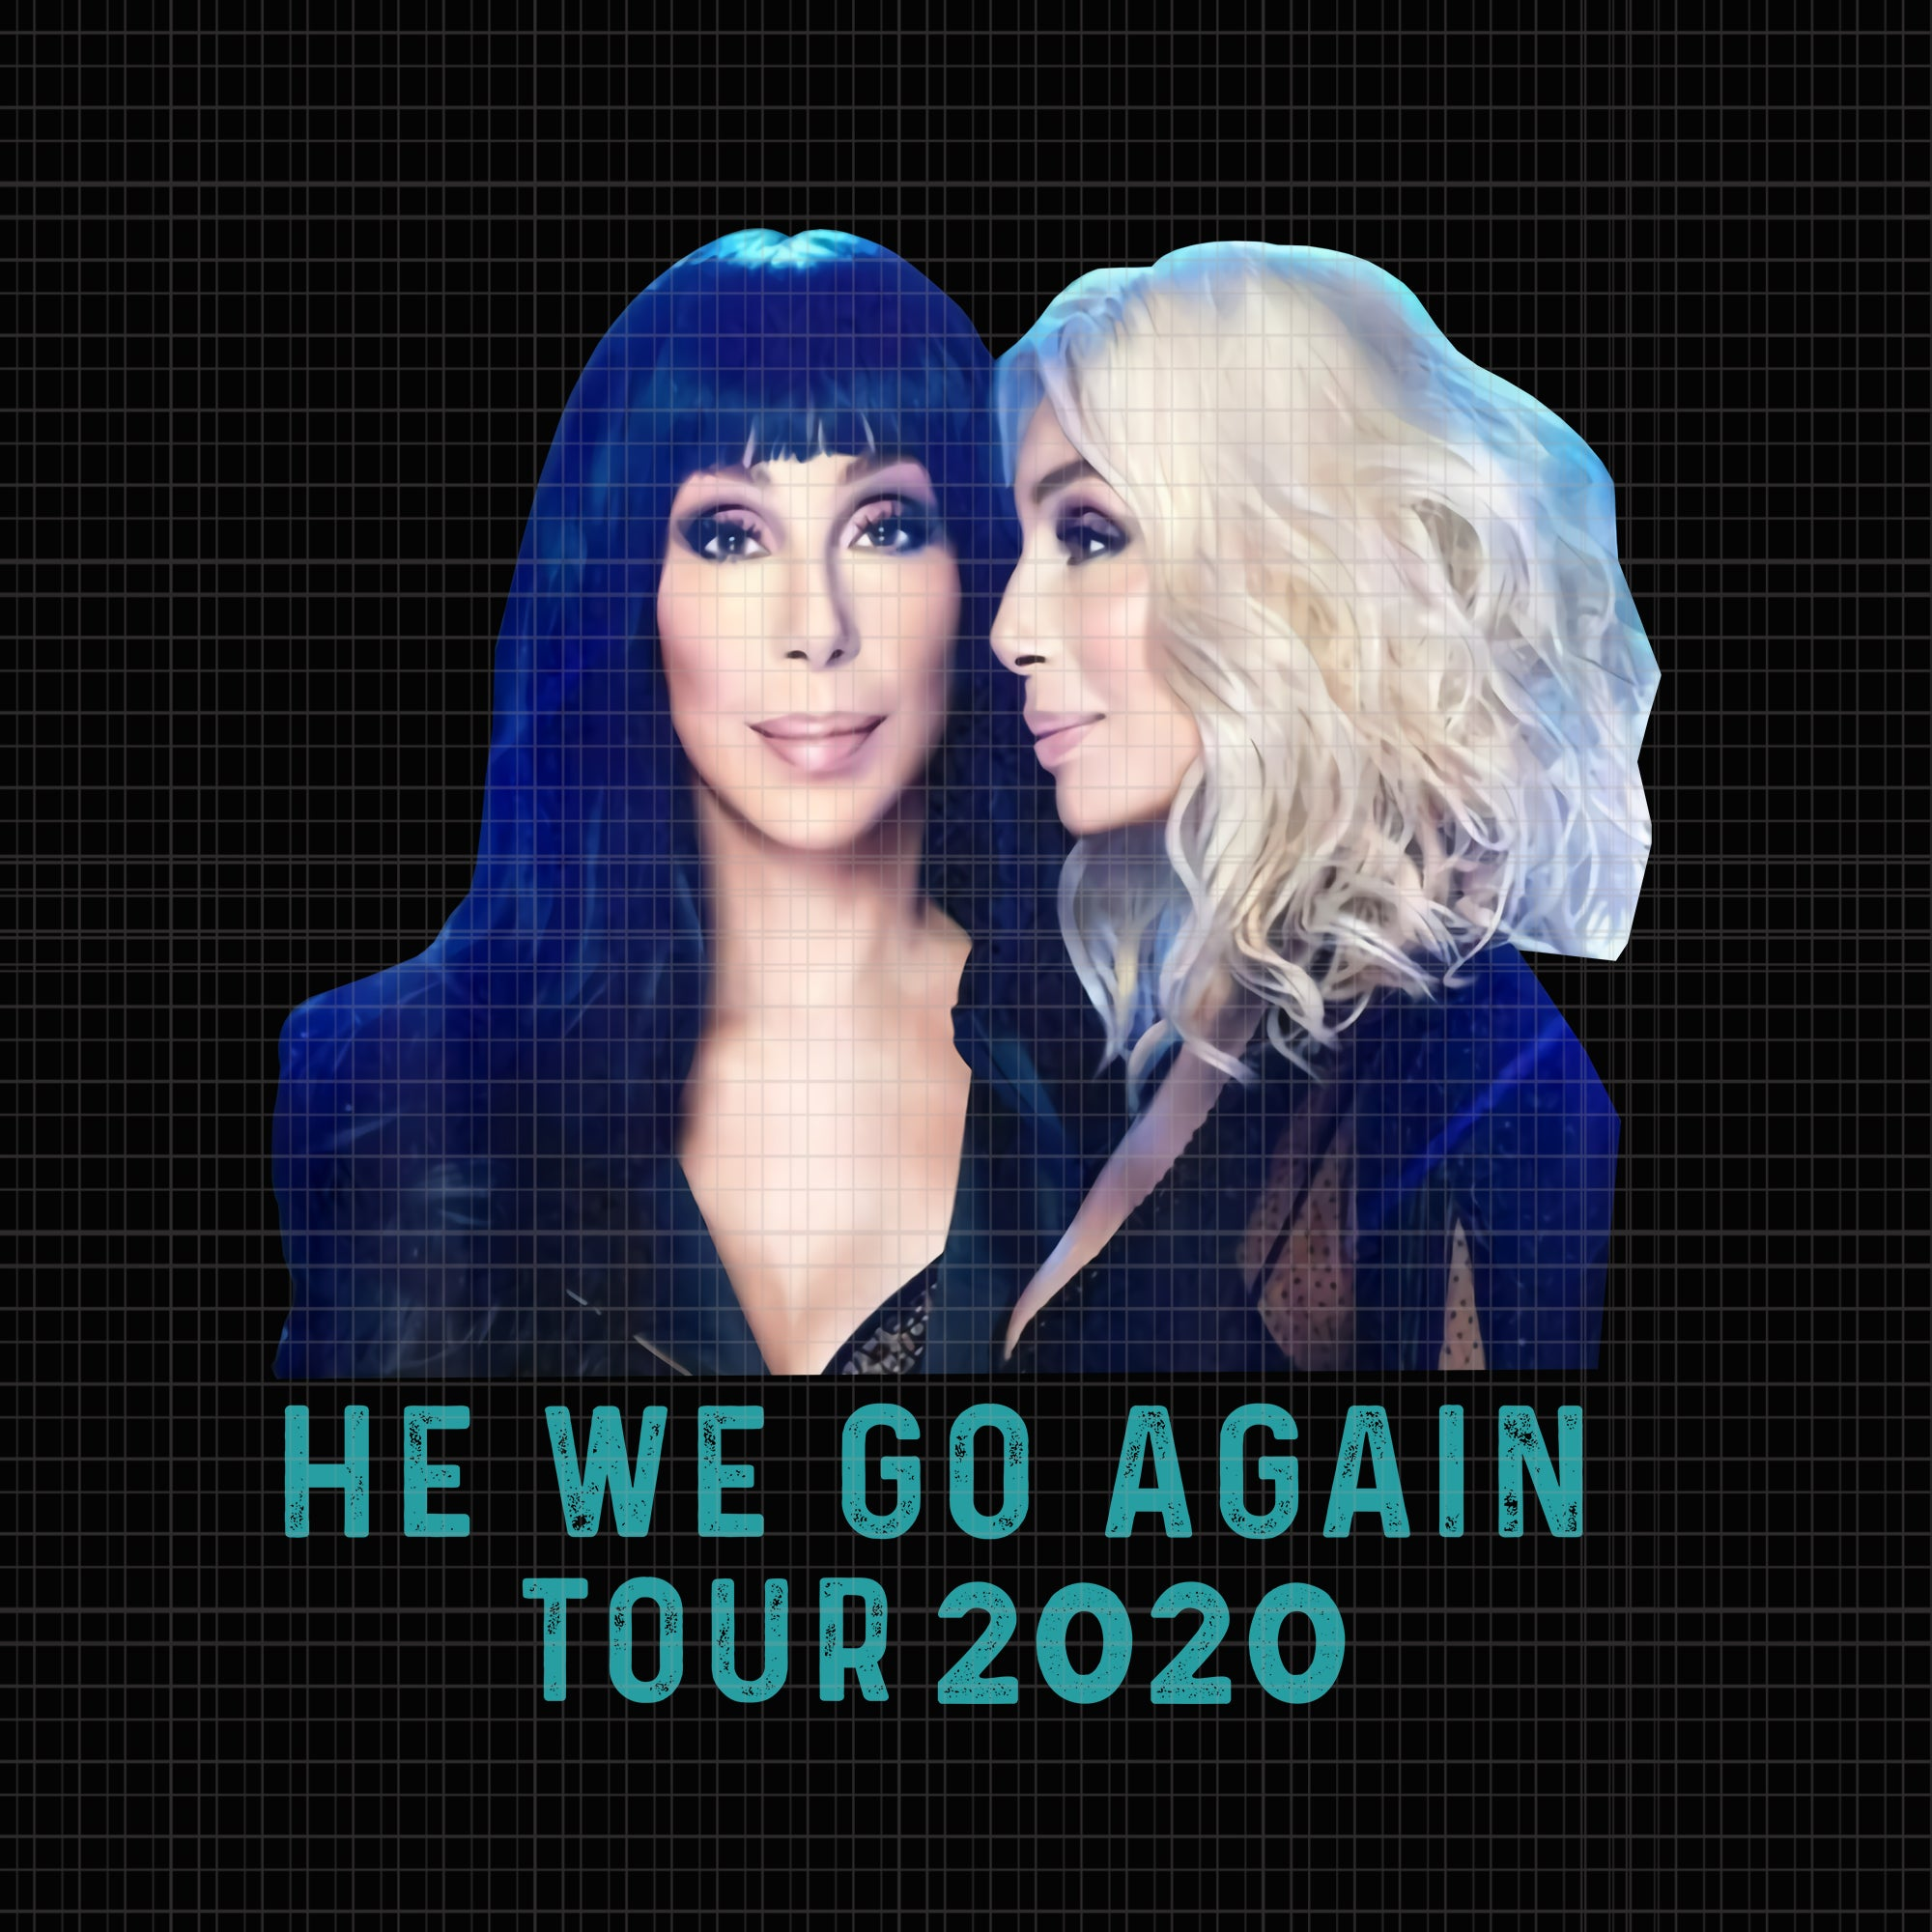 Retro Chers Love Country Music Funny Tour 2020 png, Retro Chers Love Country Music Funny Tour 2020, he we go again tour 2020